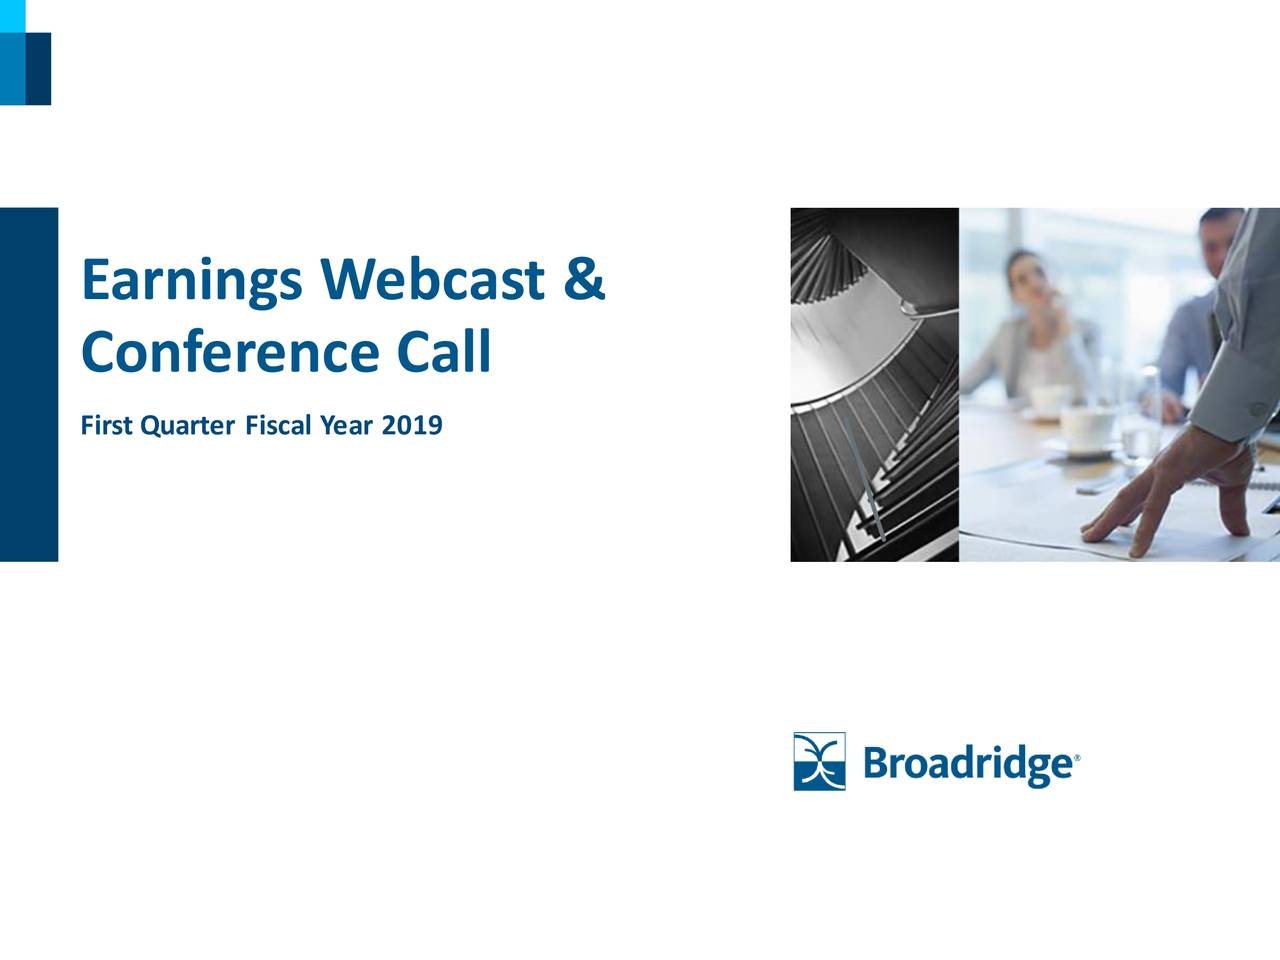 Conference Call First Quarter Fiscal Year 2019